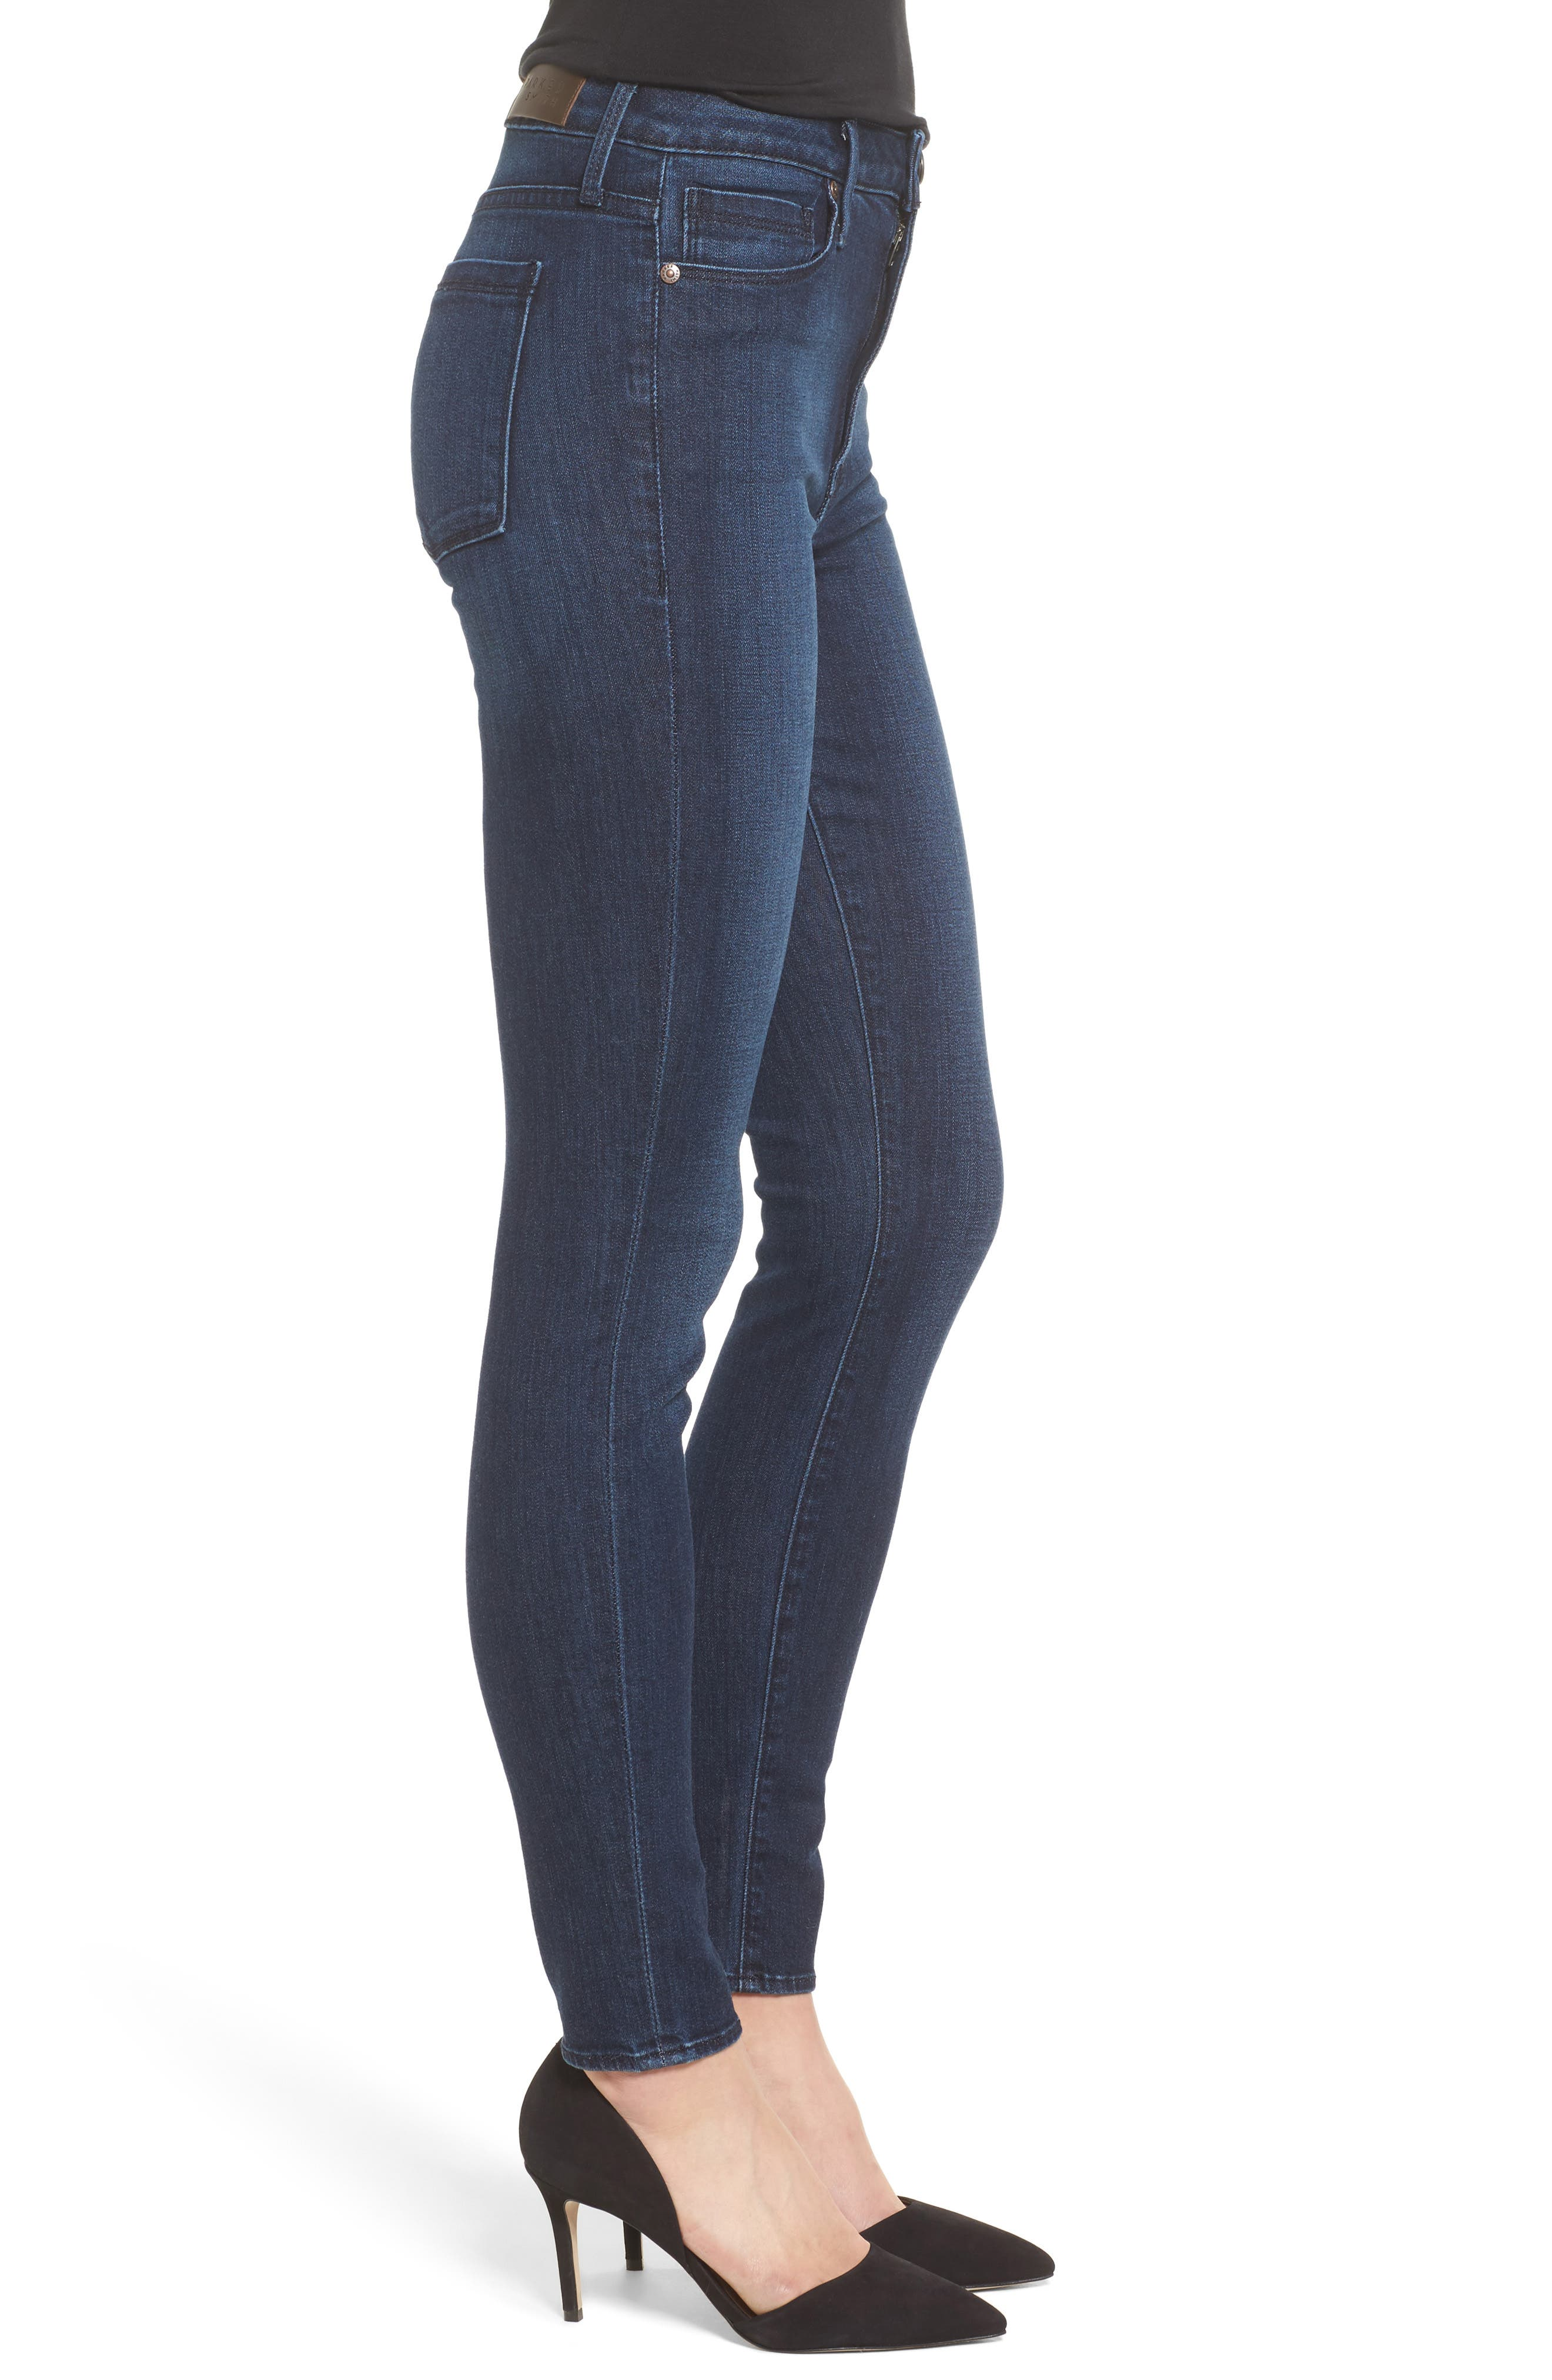 Alternate Image 3  - PARKER SMITH Bombshell High Waist Stretch Skinny Jeans (Baltic)